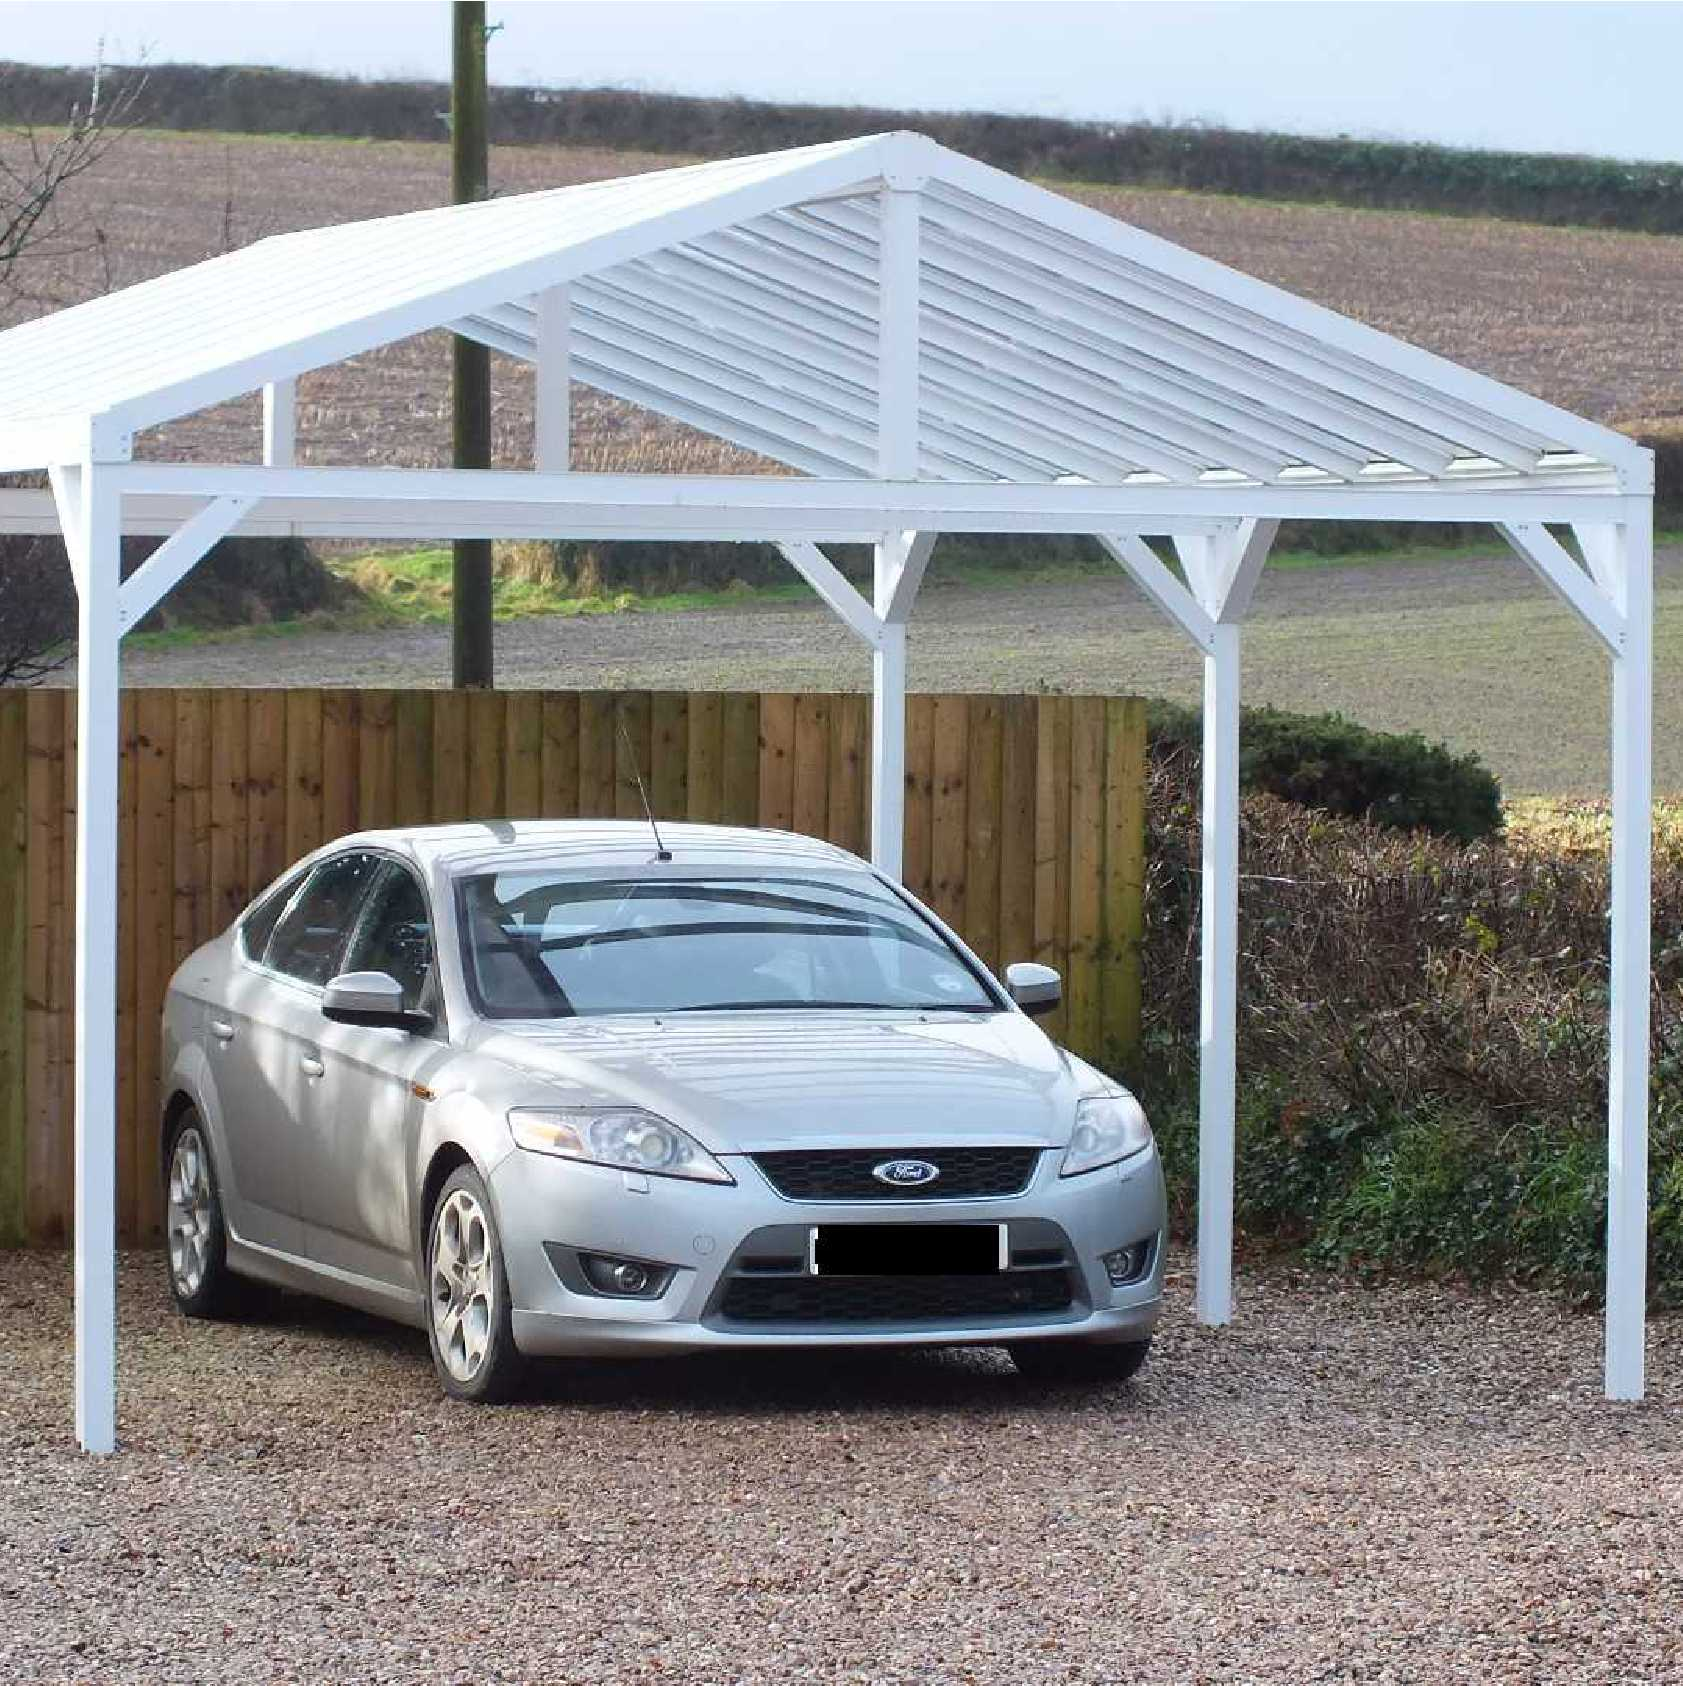 Buy Omega Smart Free-Standing, Gable-Roof (type 1) Canopy with 16mm Polycarbonate Glazing - 5.2m (W) x 3.5m (P), (6) Supporting Posts online today